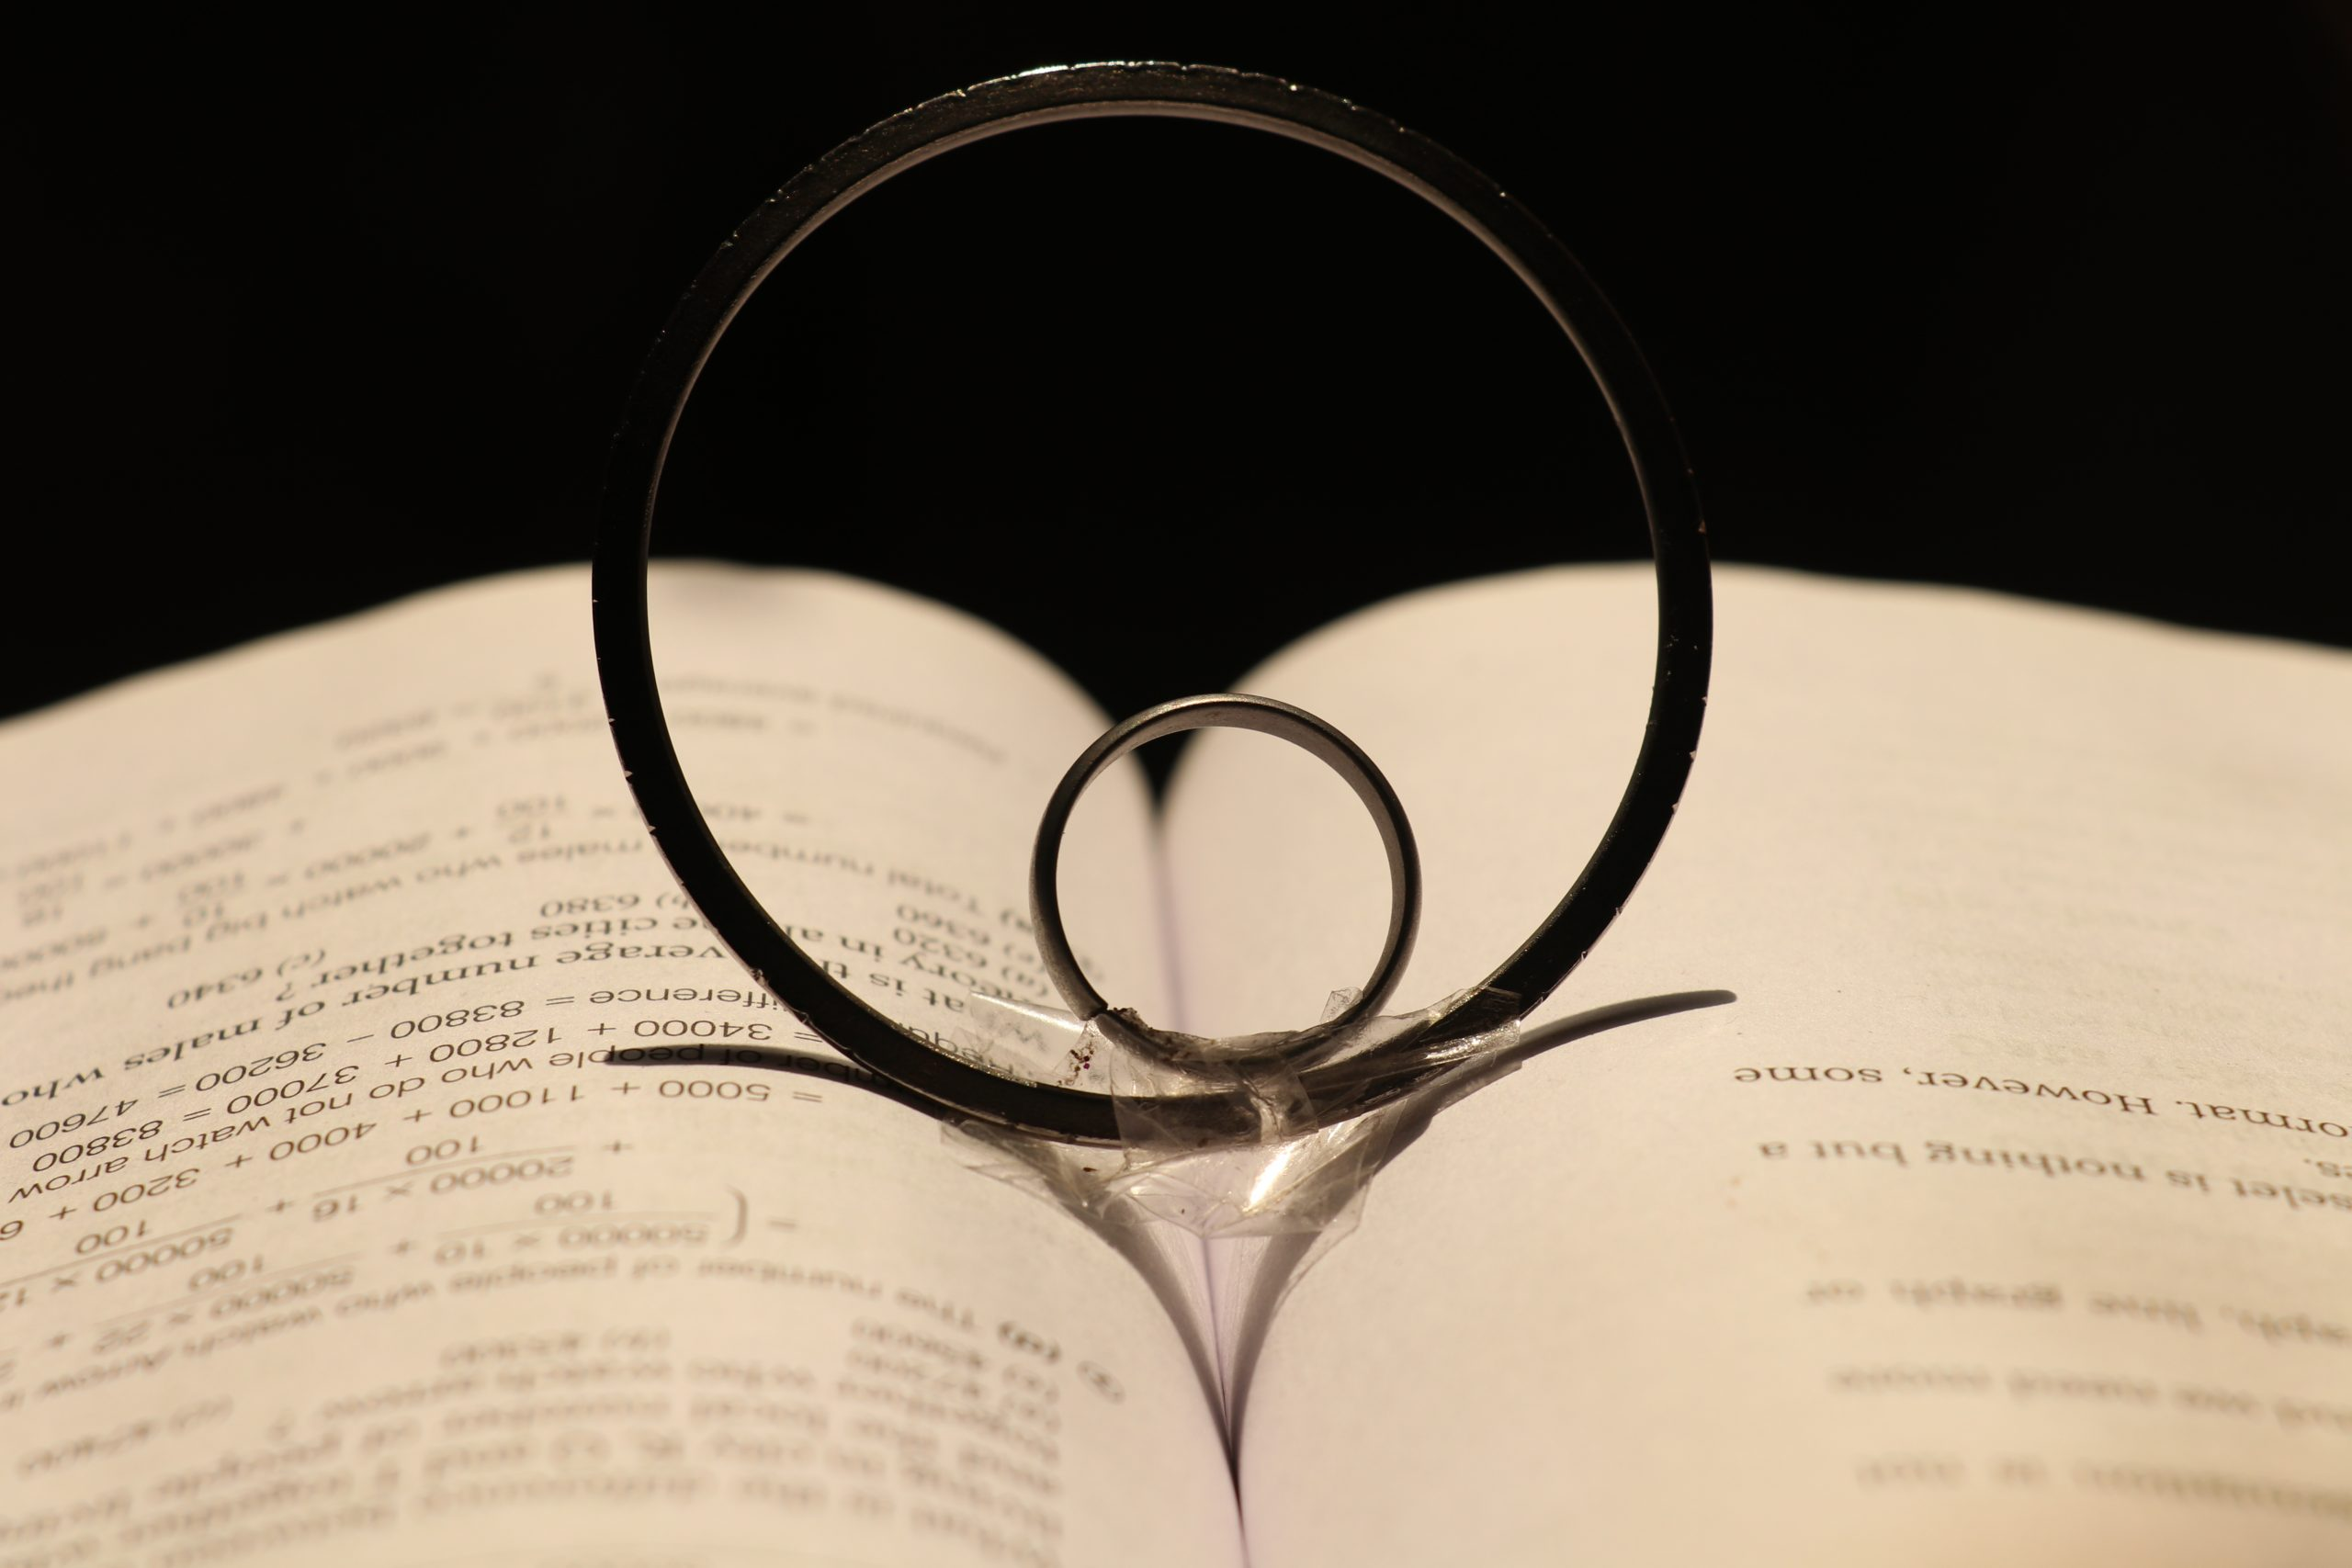 Two rings on a book